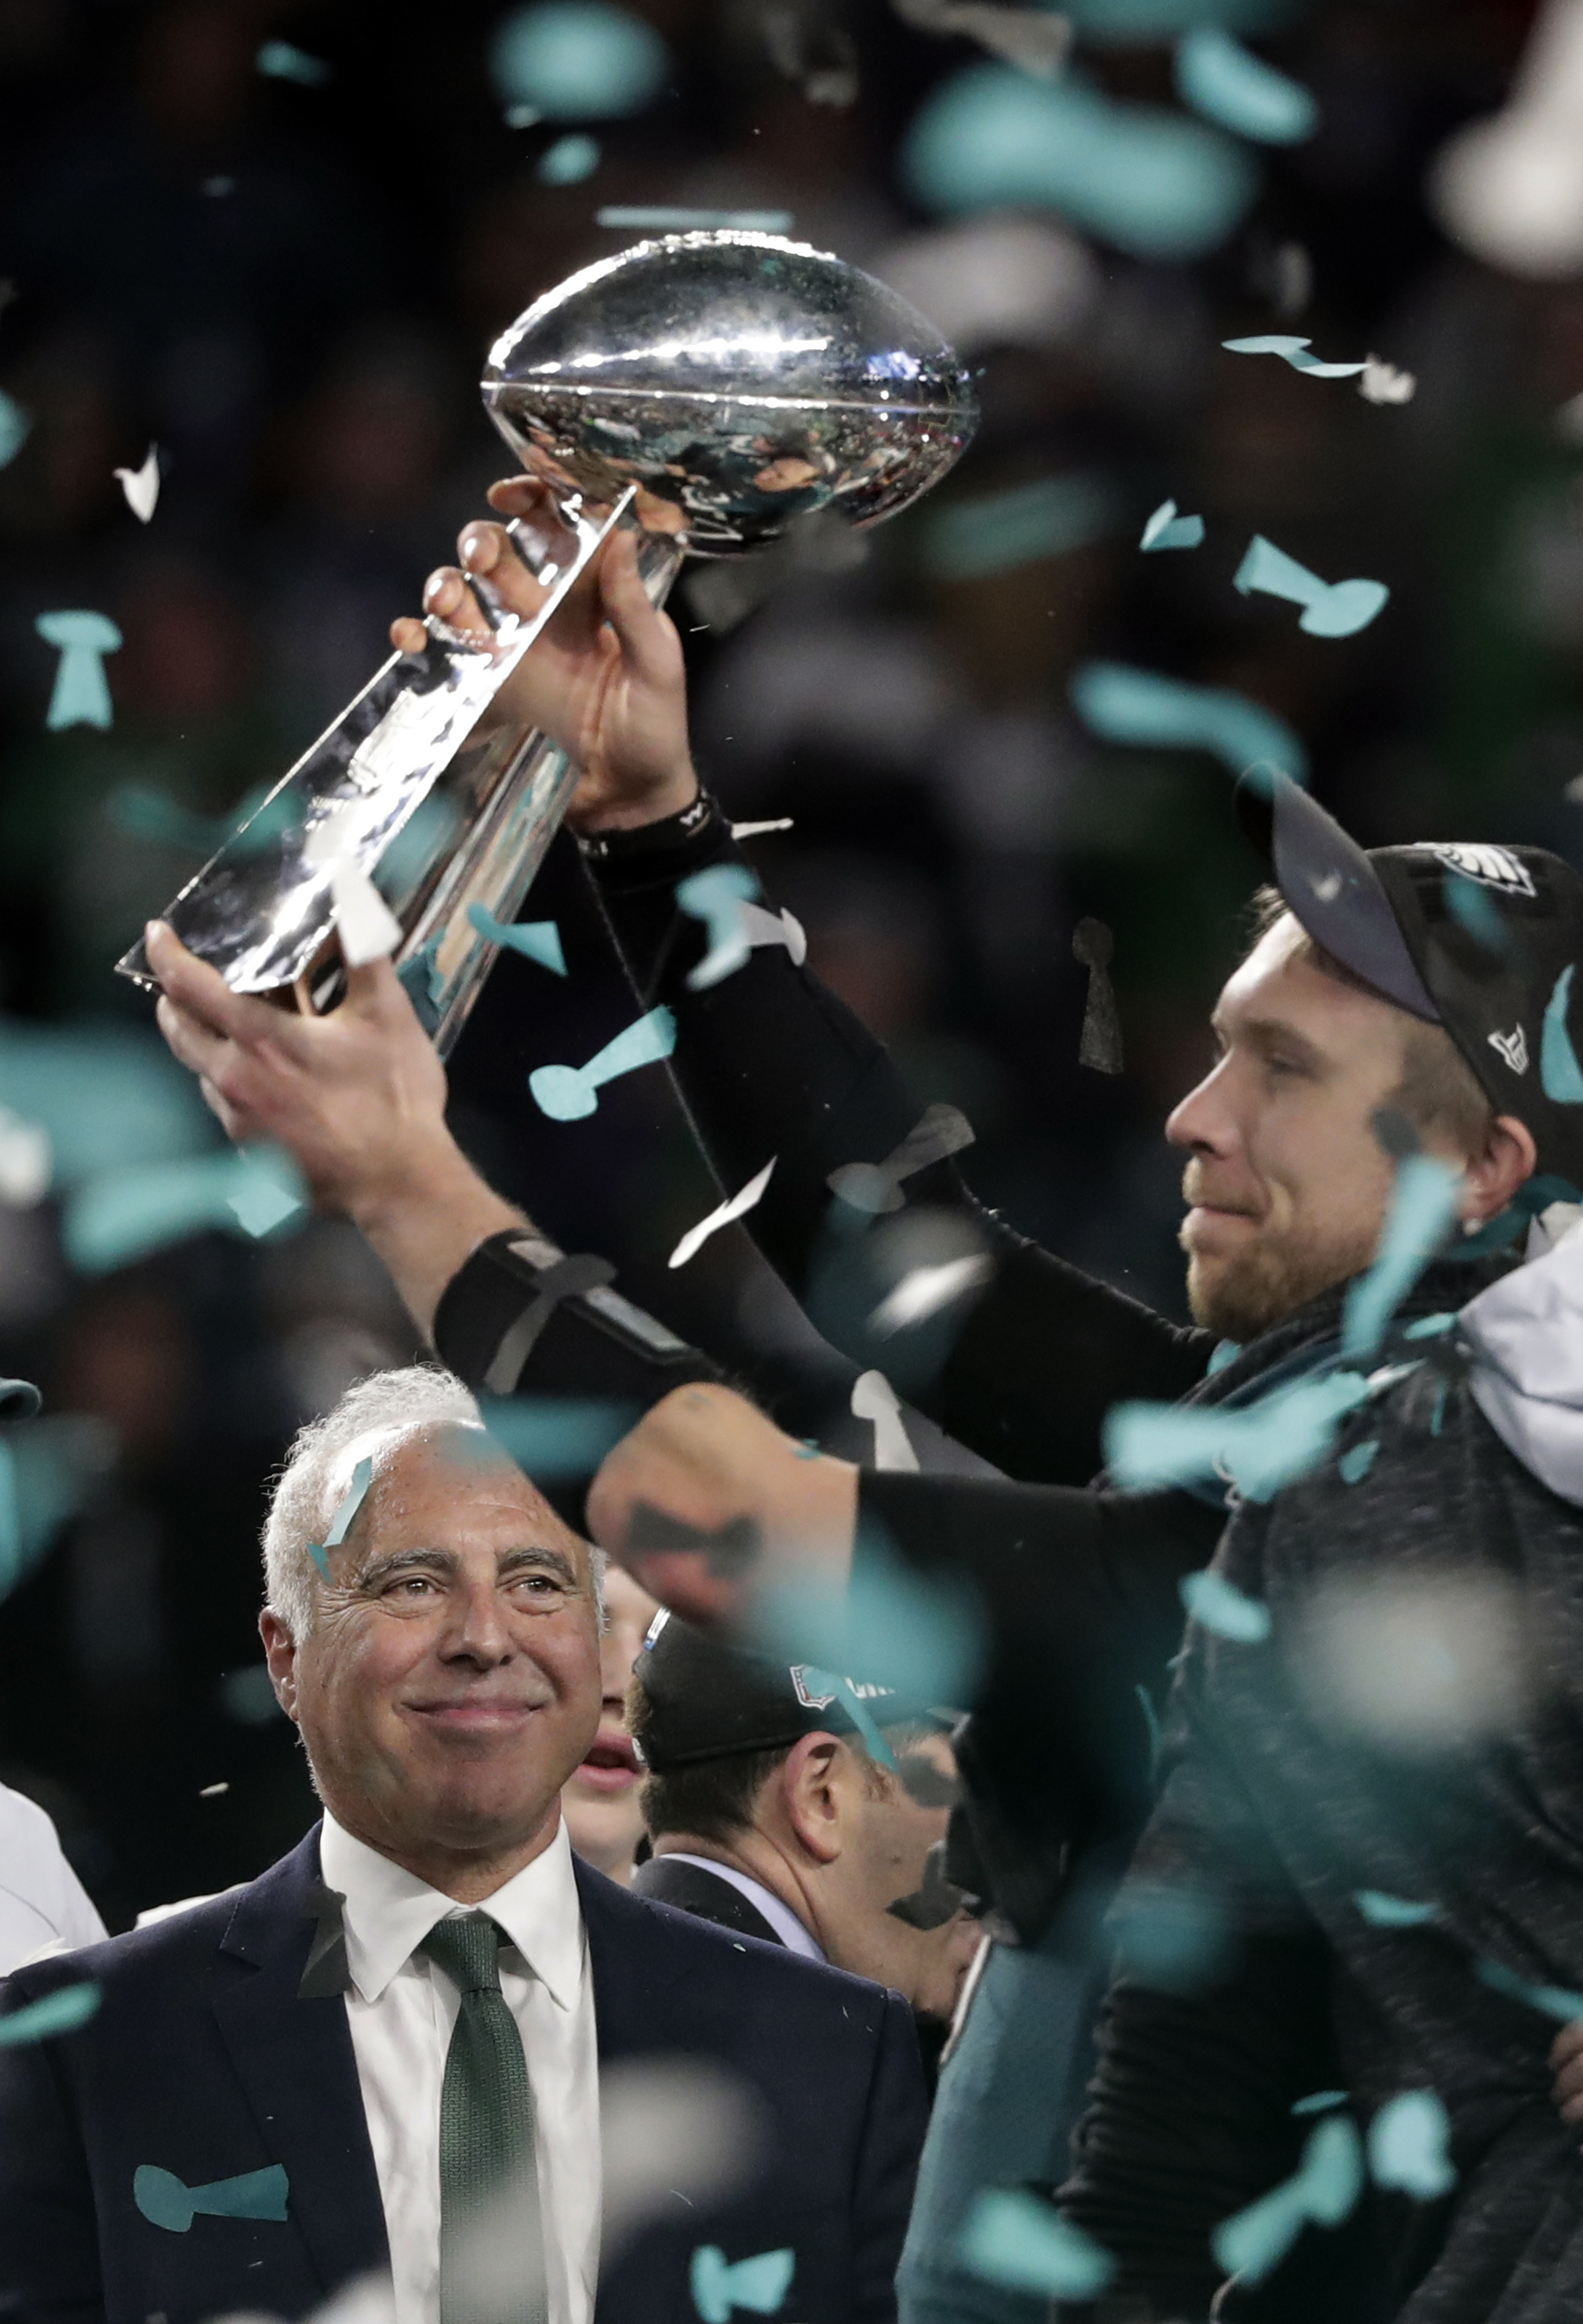 "<div class=""meta image-caption""><div class=""origin-logo origin-image ap""><span>AP</span></div><span class=""caption-text"">Philadelphia Eagles quarterback Nick Foles hoists the Vincent Lombardi trophy as owner Jeffrey Lurie, smiles after winning the NFL Super Bowl 52 football game. (AP Photo/Tony Gutierrez)</span></div>"